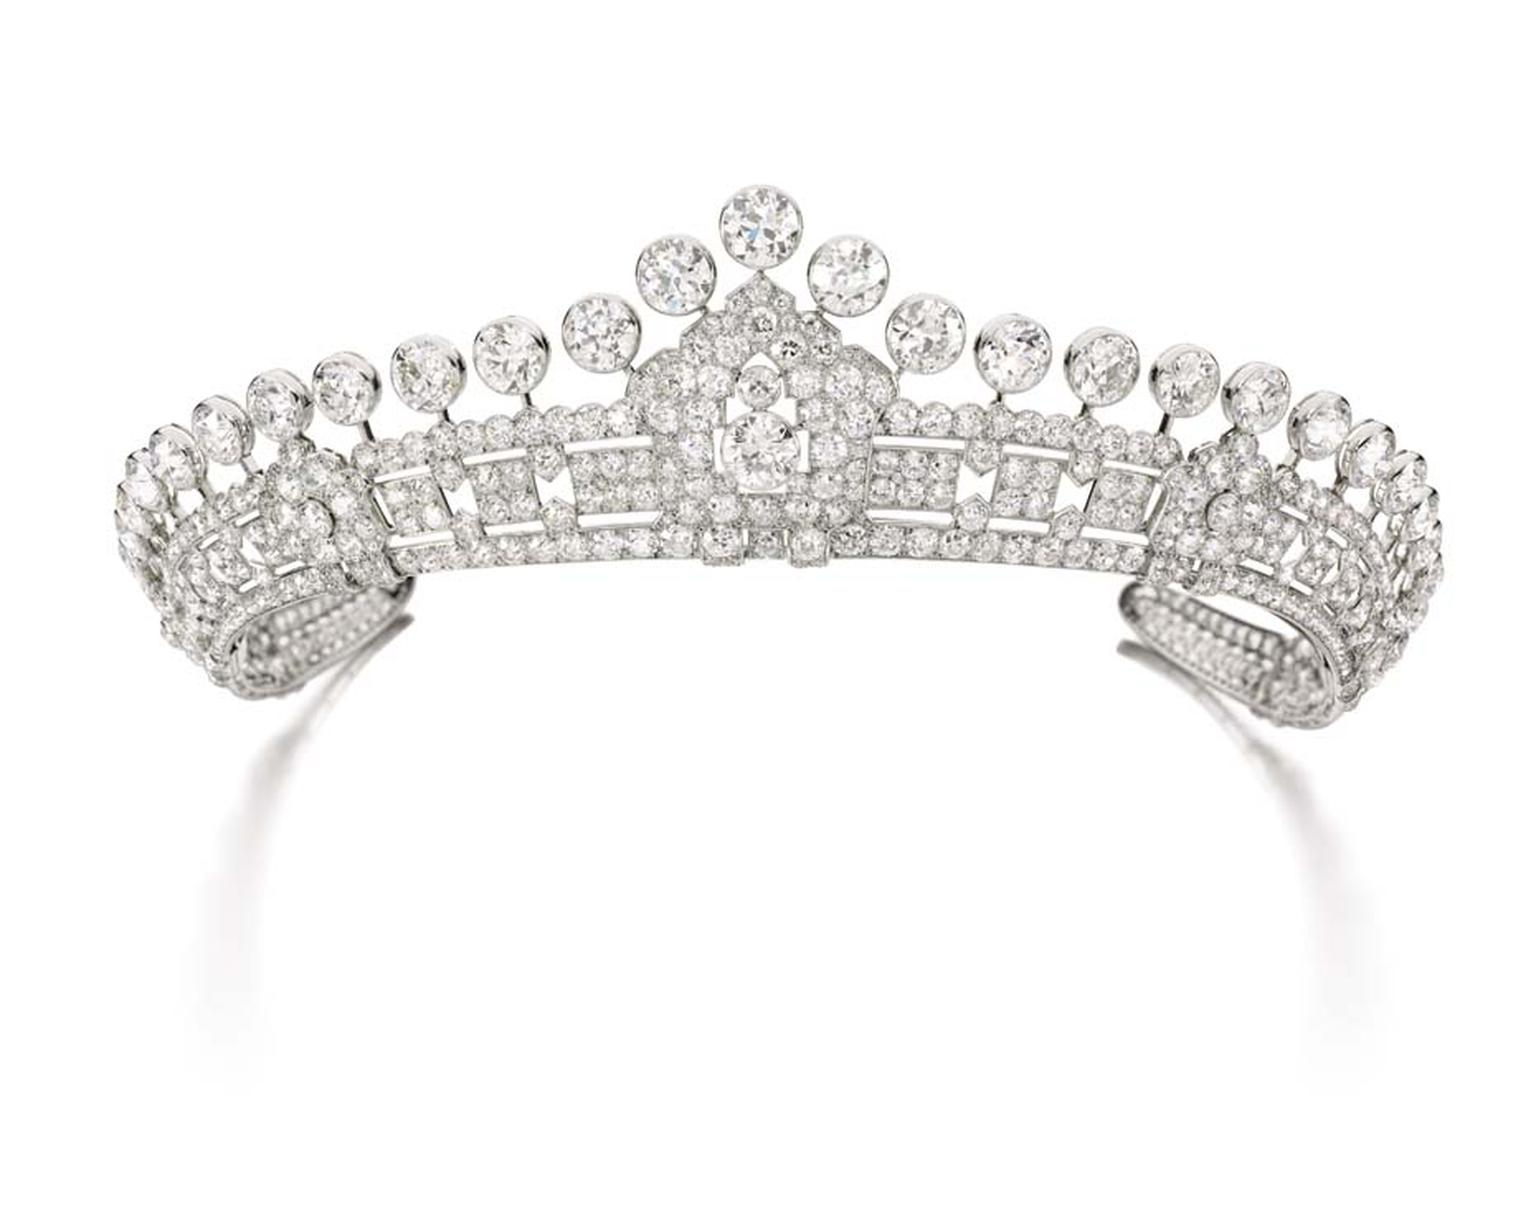 A 1930s' Cartier diamond tiara is one of three vintage-style tiaras from the estate of Mary, Duchess of Roxburghe, set to go under the hammer at next month's Magnificent Jewels and Noble Jewels Sale at Sotheby's Geneva.